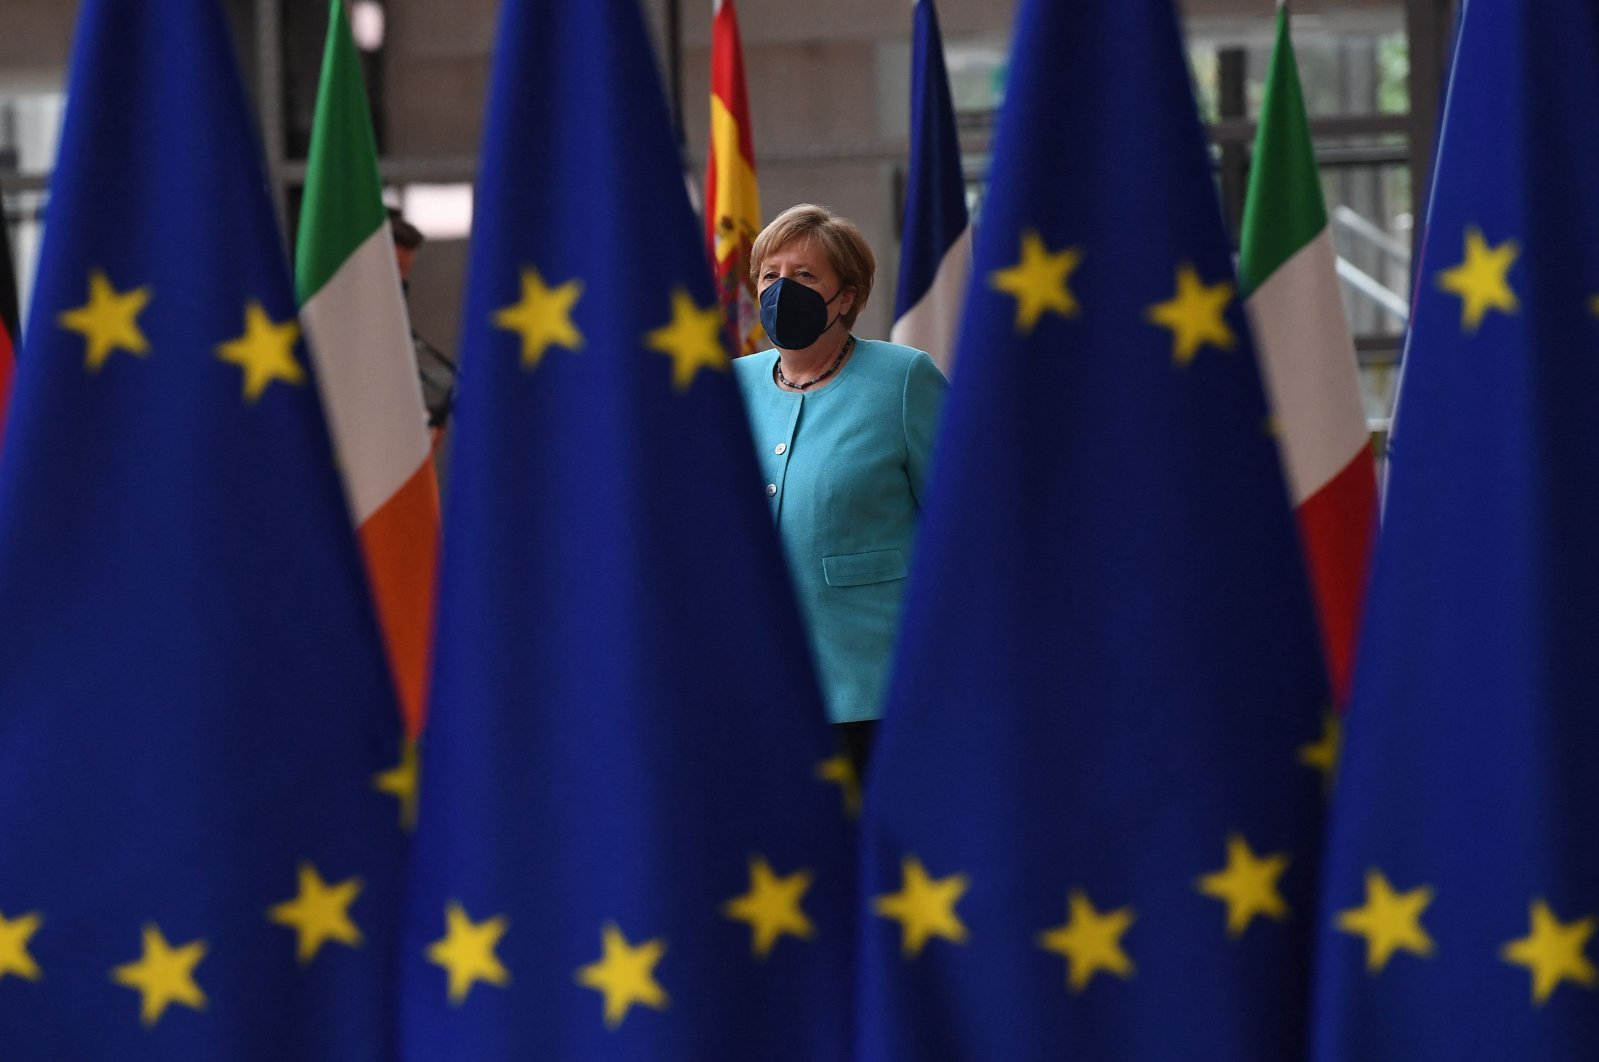 Germany's Chancellor Angela Merkel arrives on the first day of a European Union summit in Brussels, Belgium, June 24, 2021. (AFP Photo)